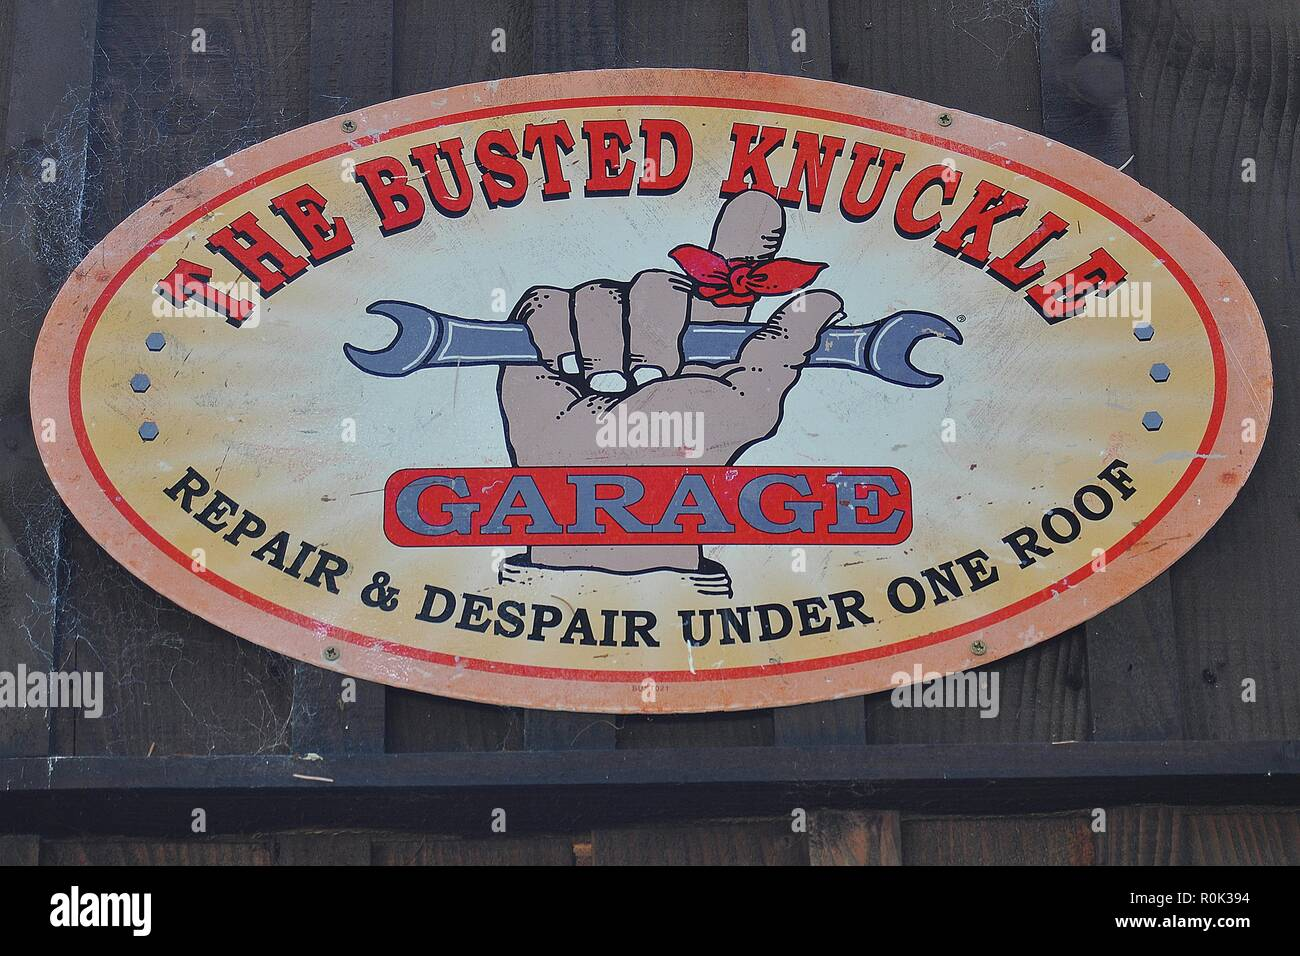 THE BUSTED KNUCKLE, AMUSING GARAGE SIGN AT BORGIE LODGE, CAITHNESS, SCOTLAND. - Stock Image